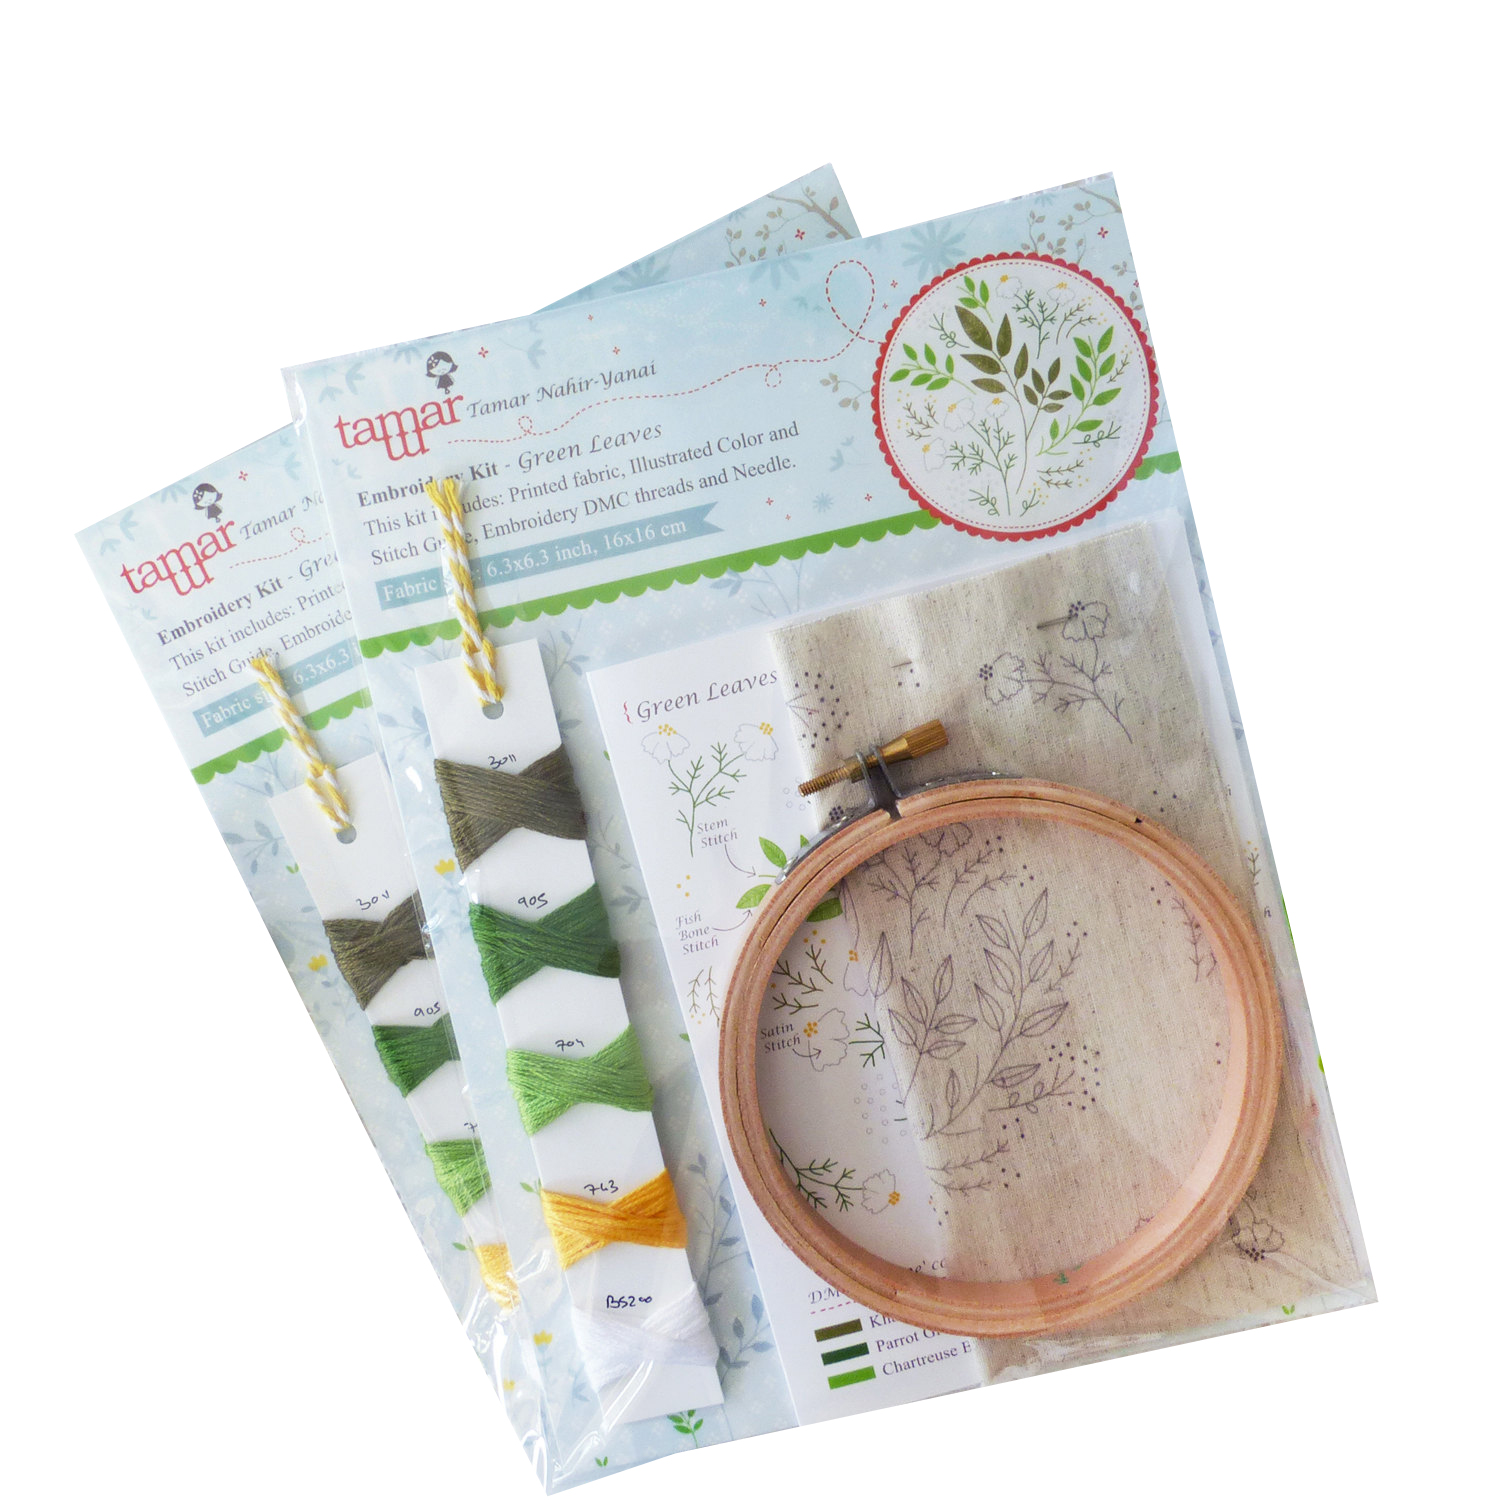 Copy of Embroidery Kit